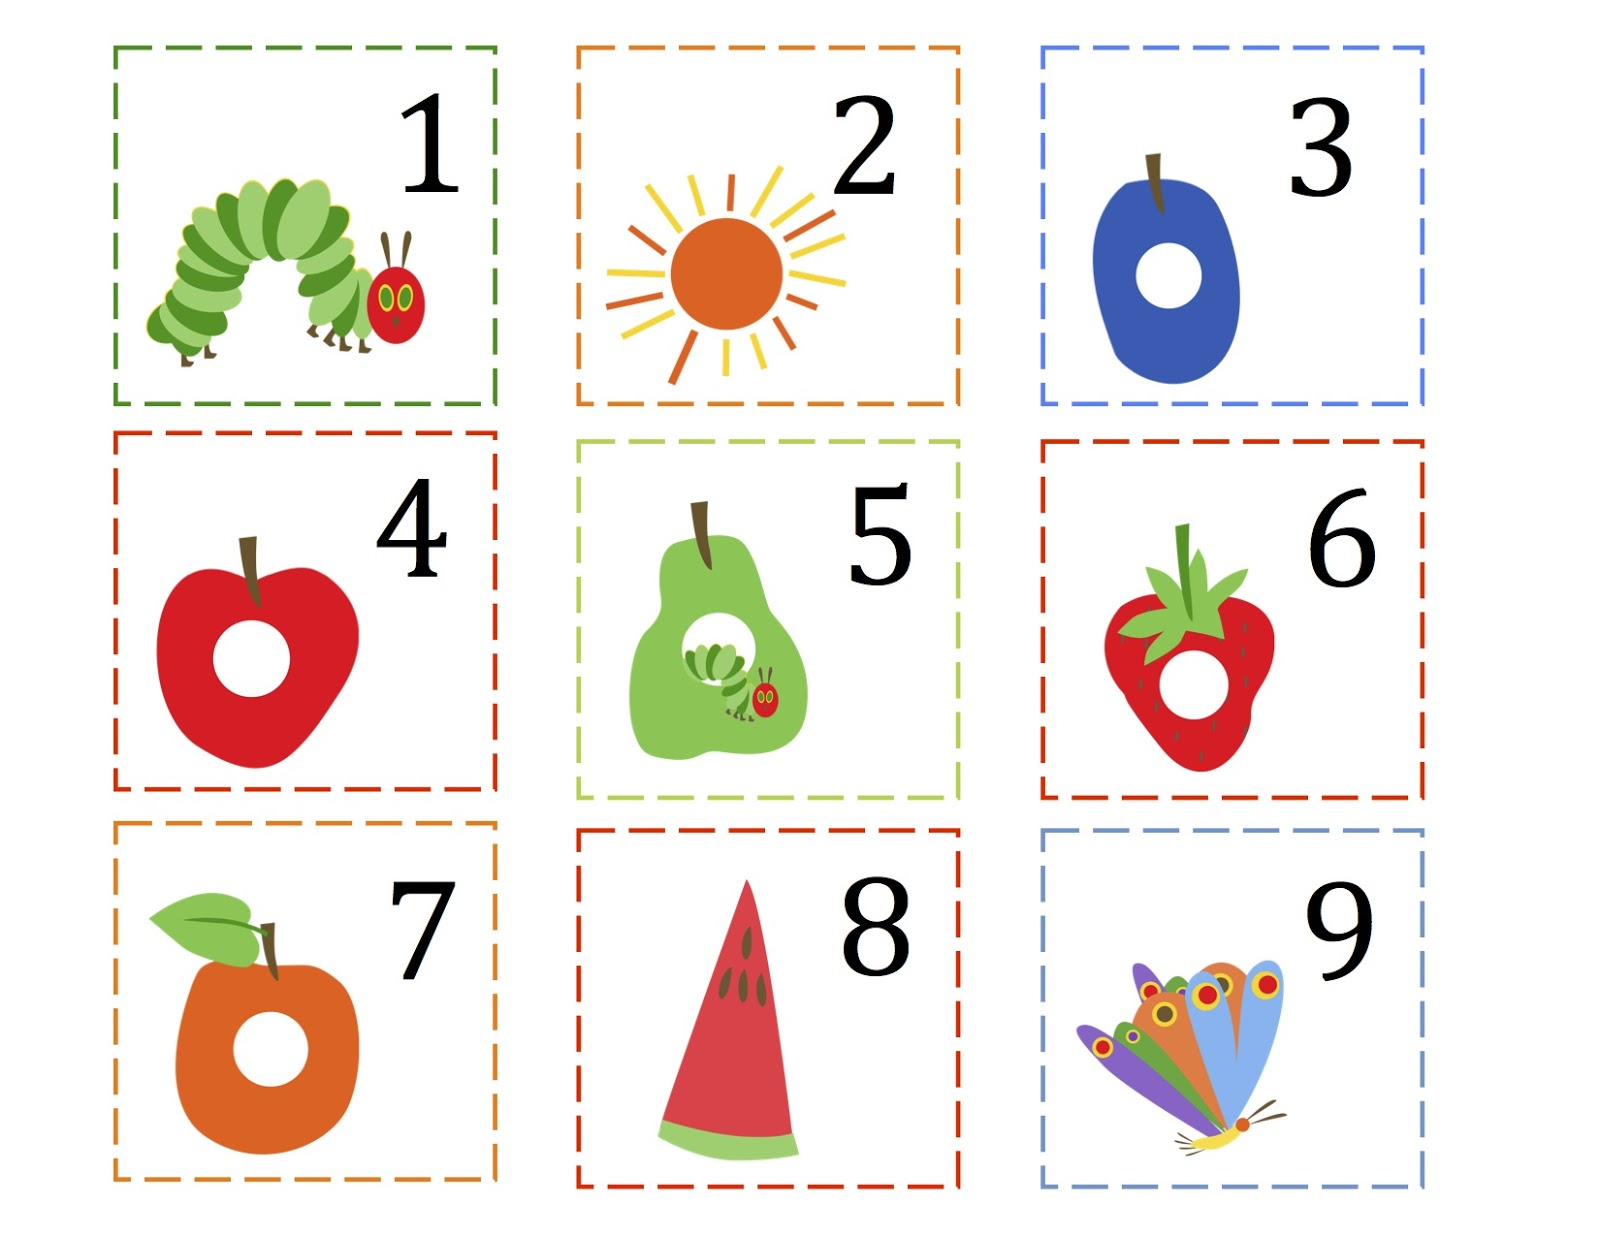 Very hungry caterpillar worksheets for preschool staffdk for Very hungry caterpillar templates free